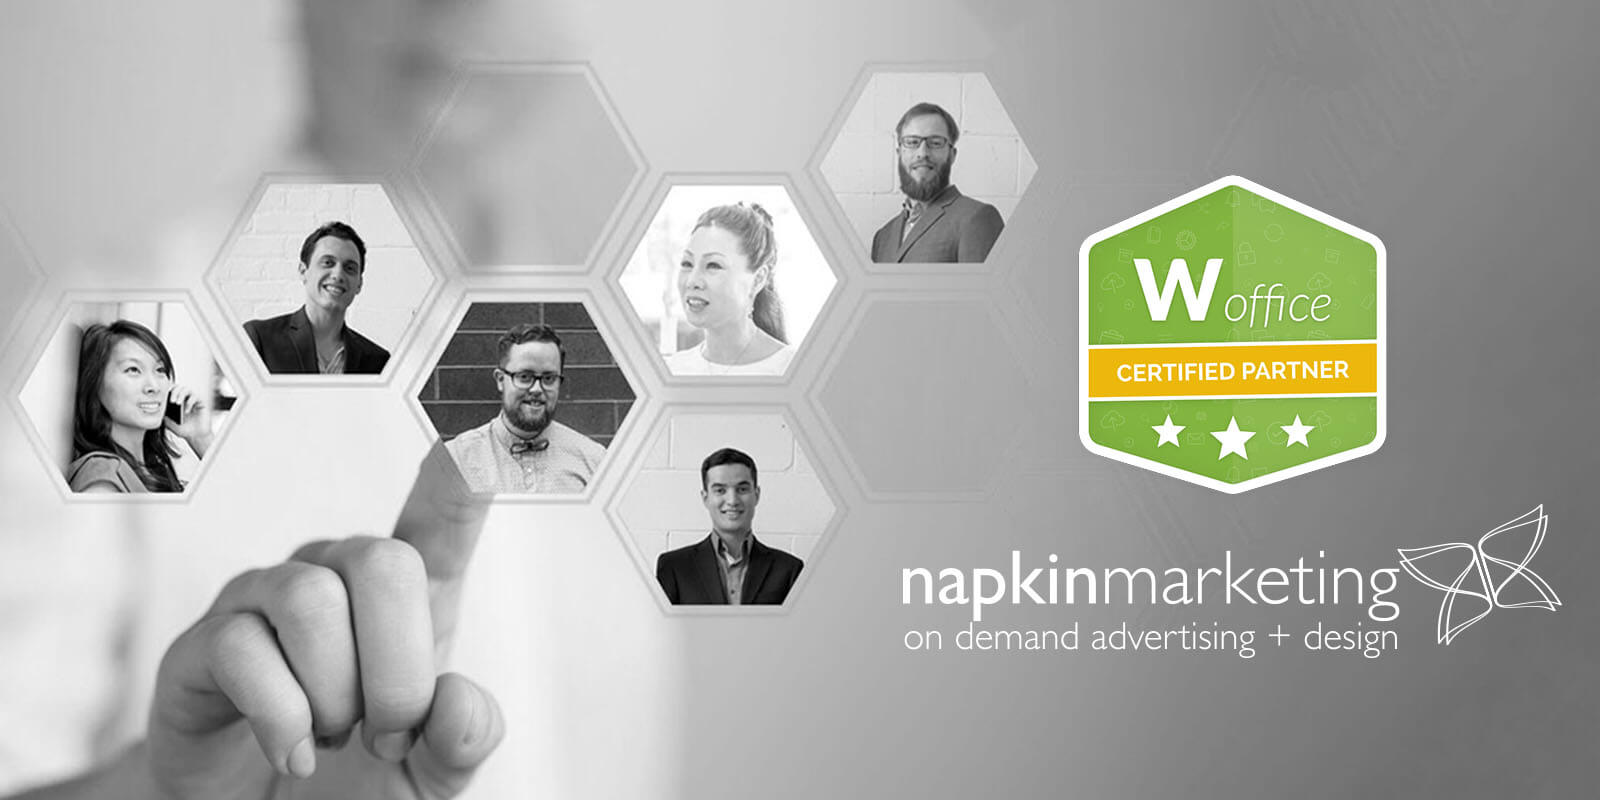 Woffice intranet design partnership